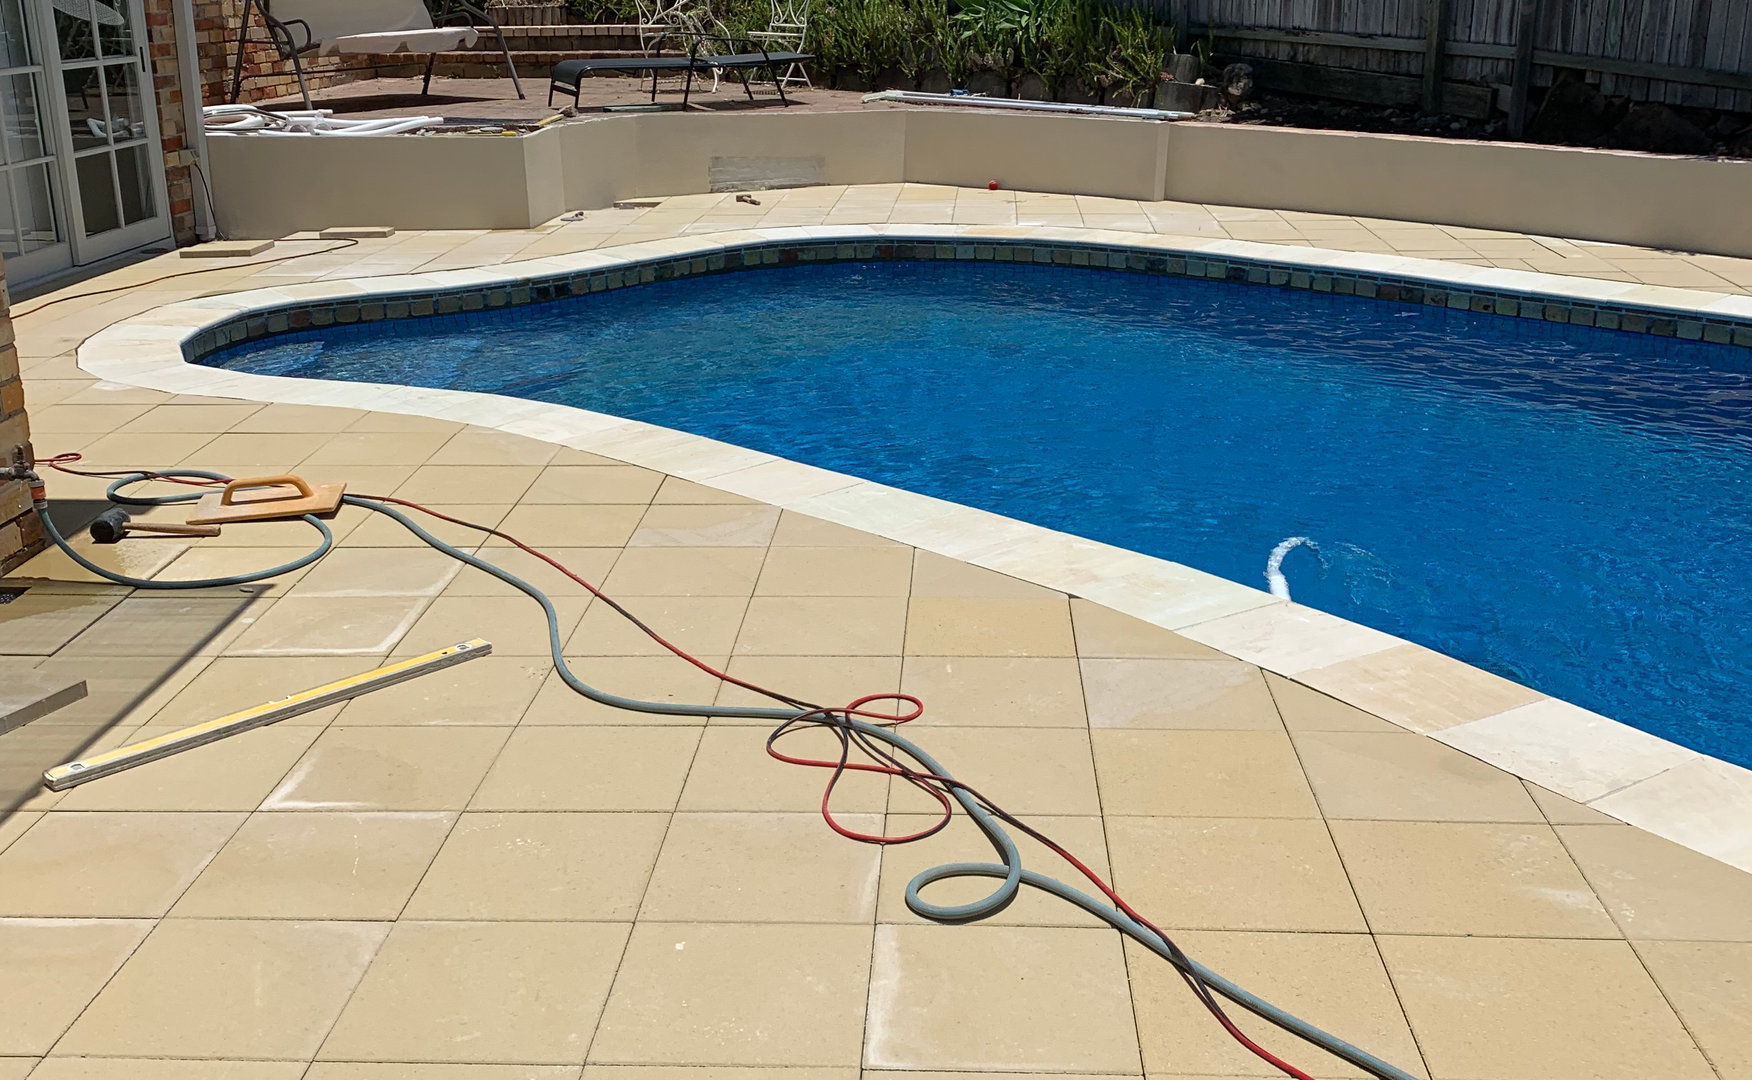 Pool Paving and Coping Project